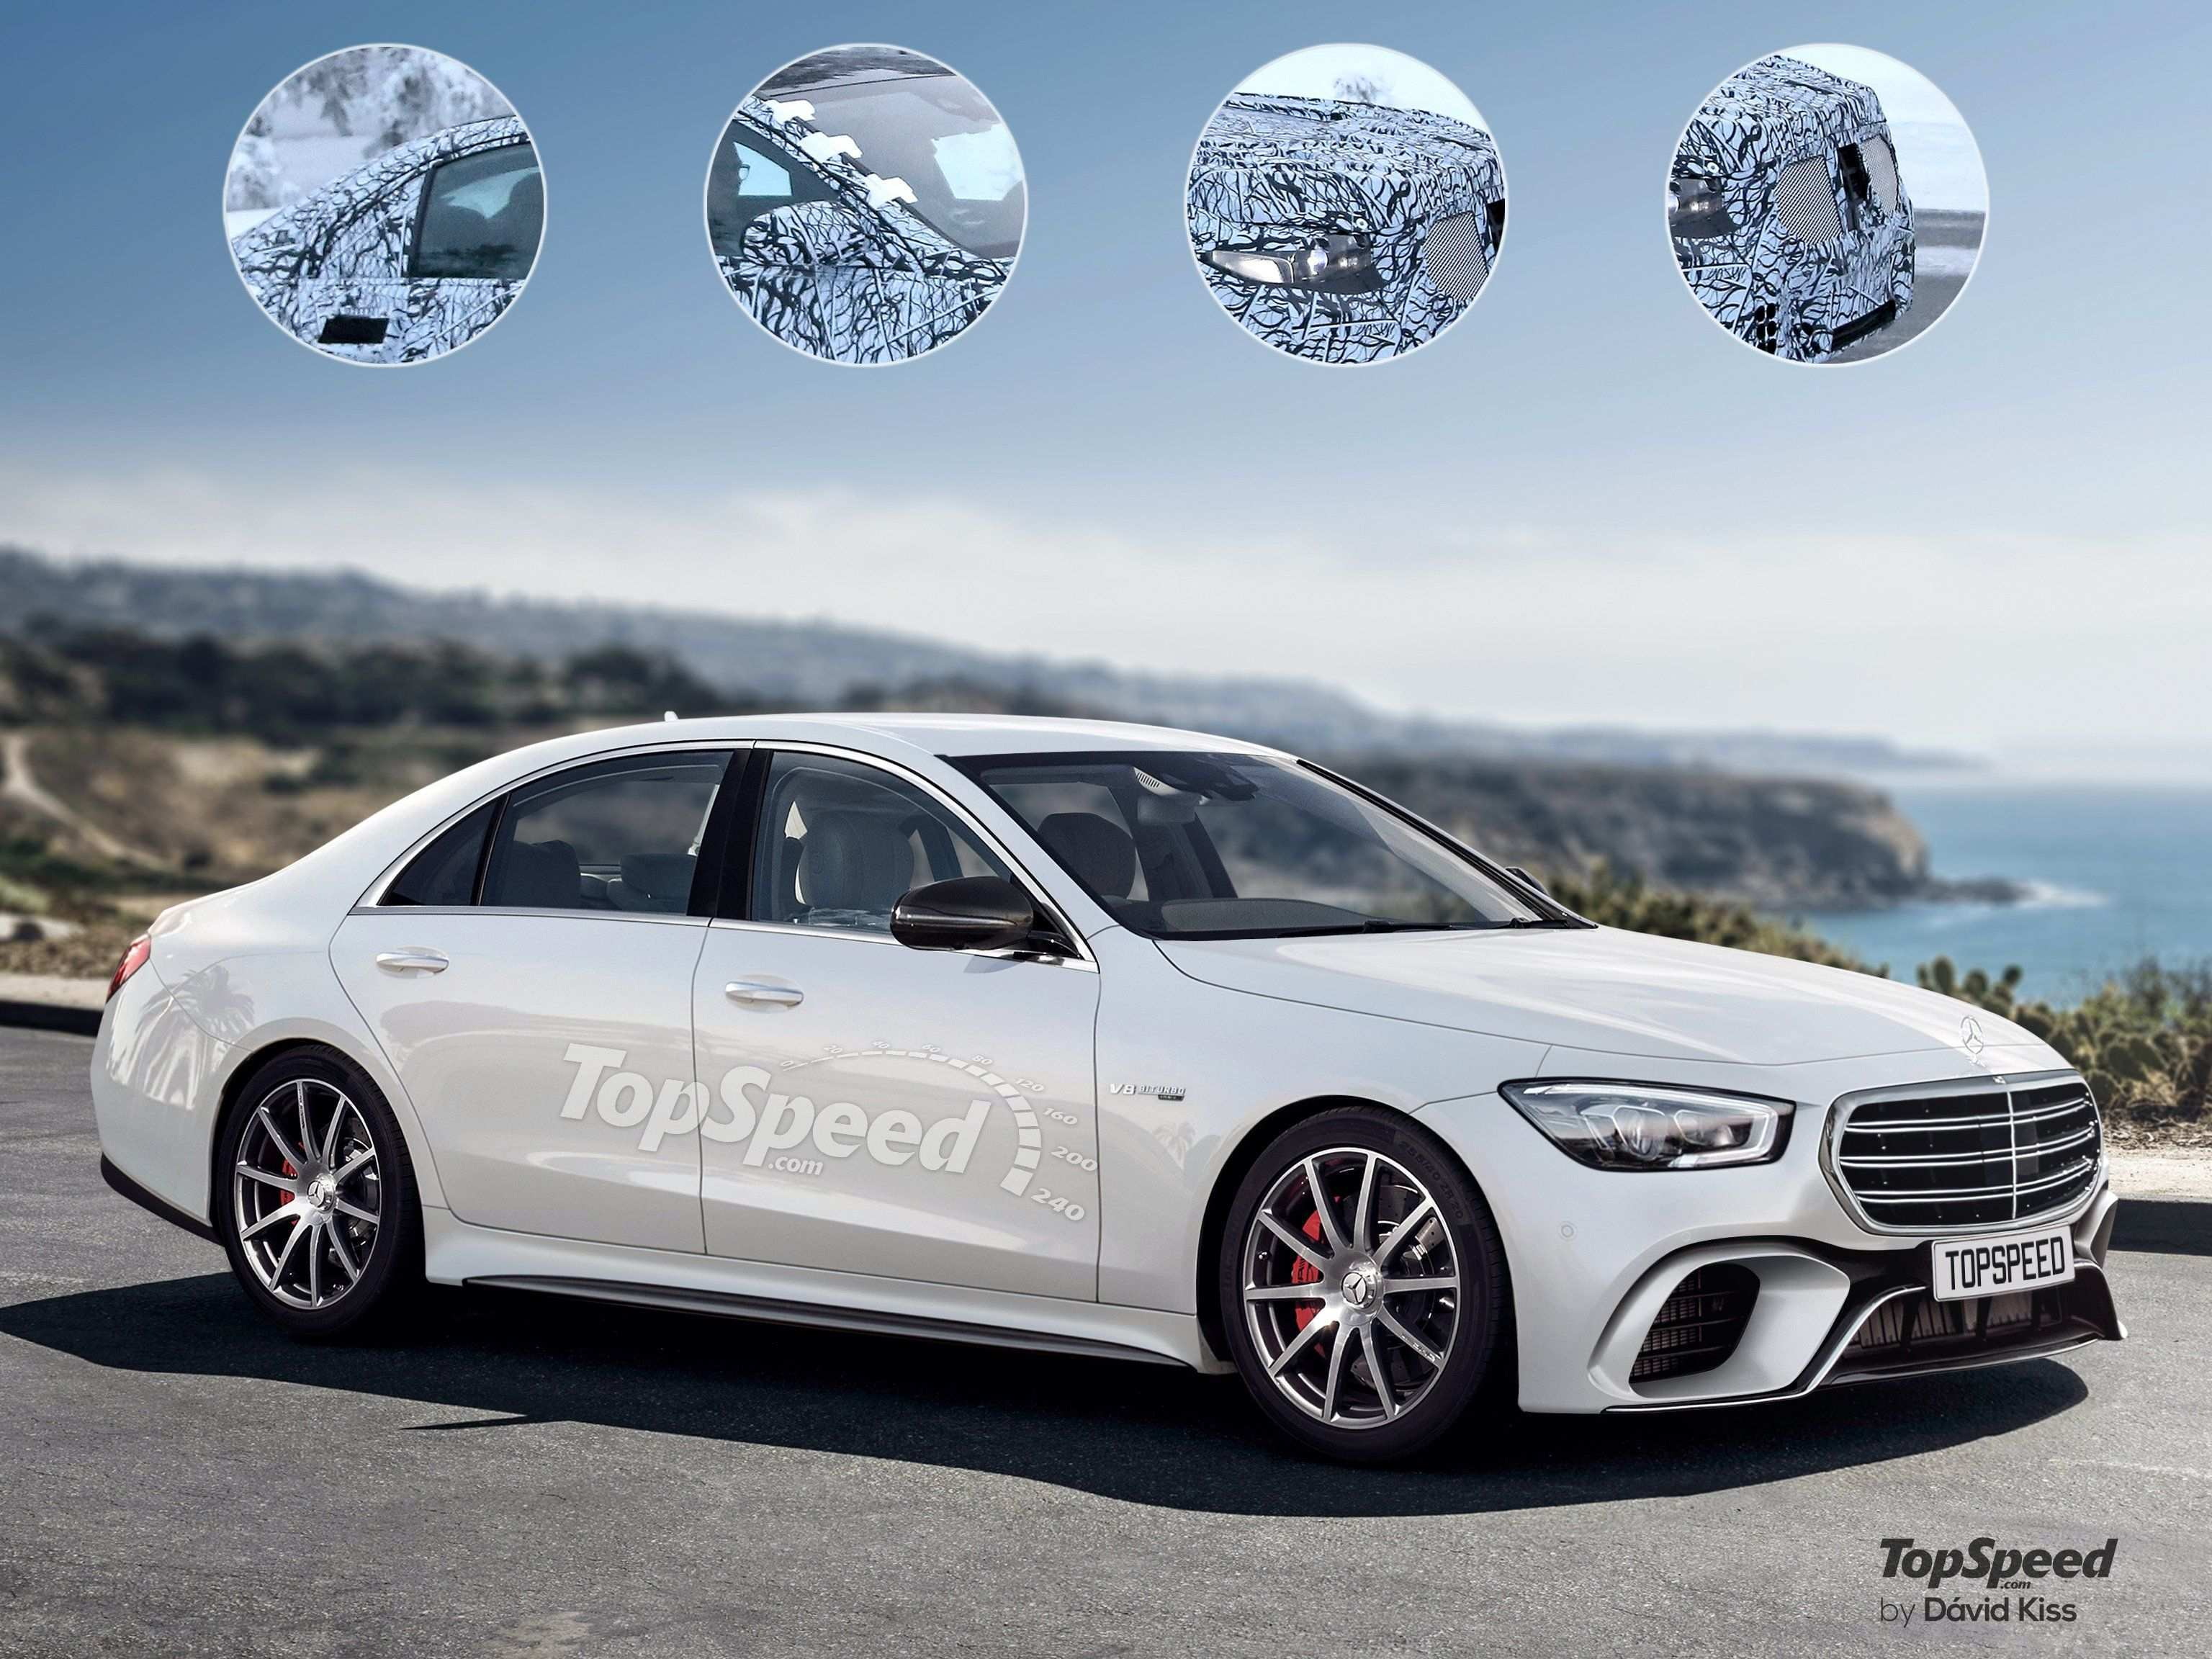 37 Gallery of 2020 Mercedes Benz E Class Rumors for 2020 Mercedes Benz E Class